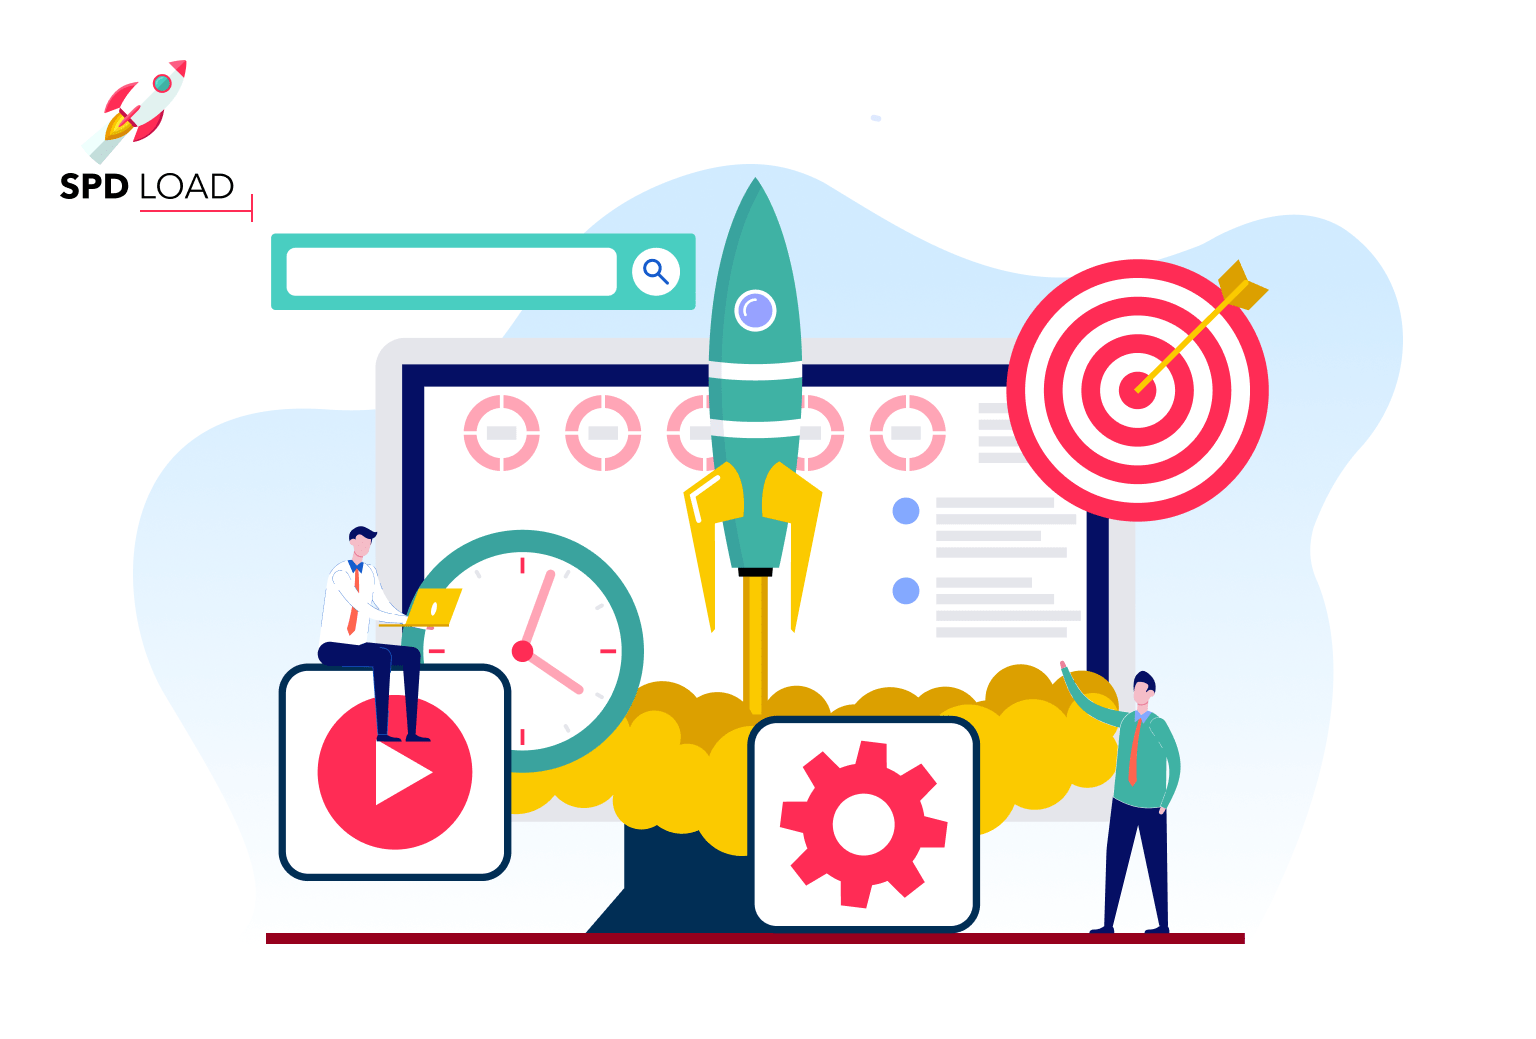 SpdLoad prepared an in-depth guide on how to make a successful app